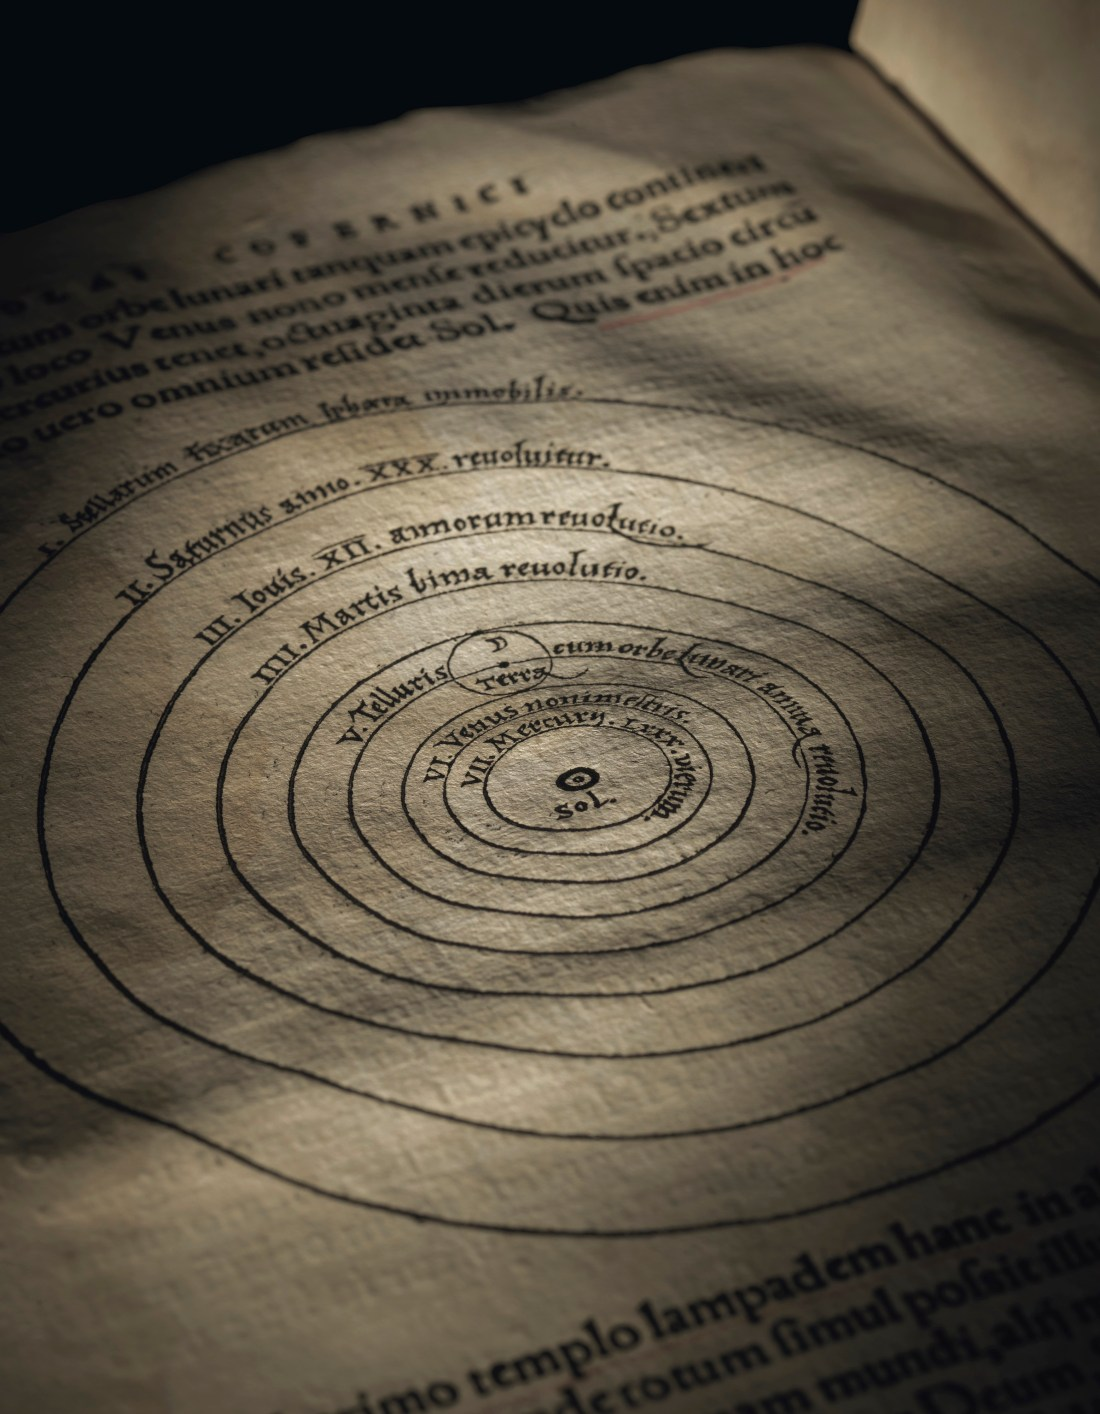 The 1543 Copernicus, open to the page showing the woodcut illustration that places the sun at the center of everything, rather than the earth.